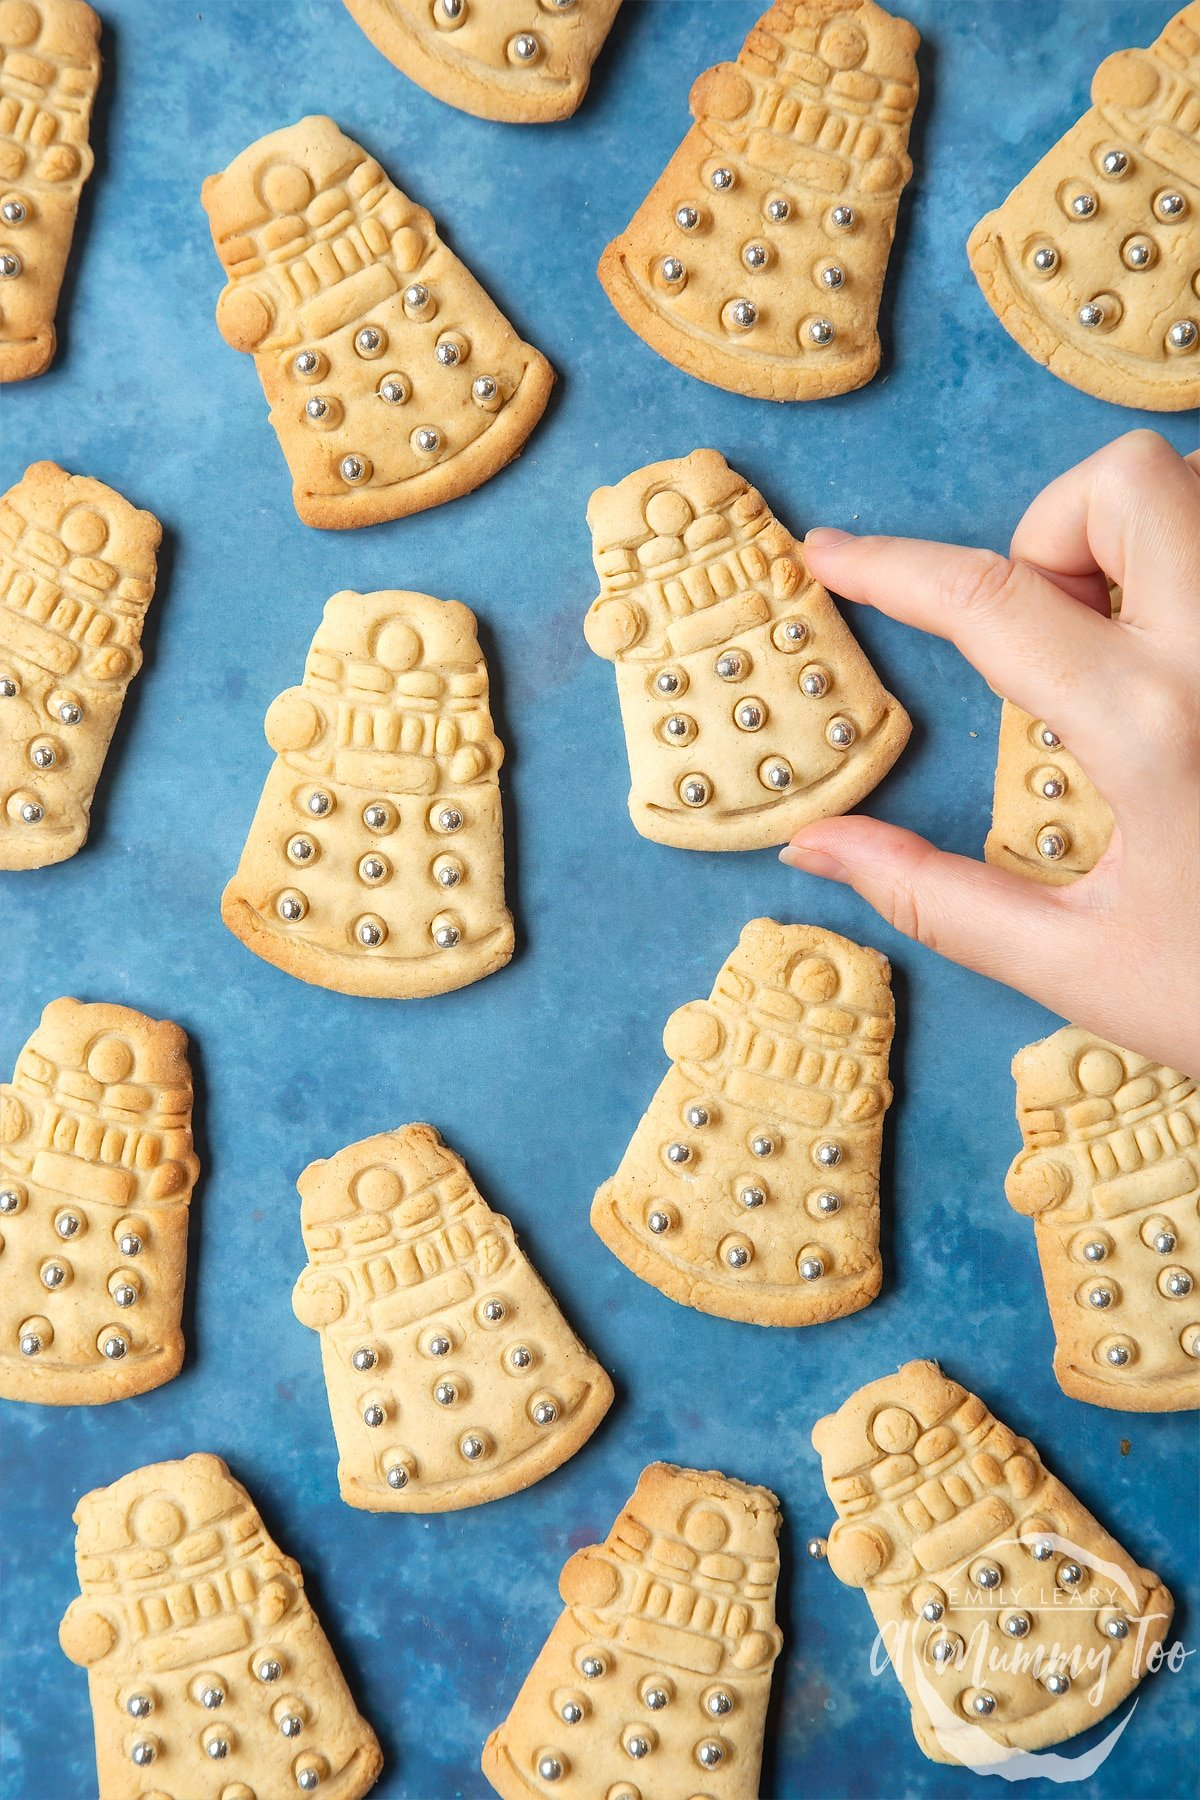 Dalek sugar cookies decorated with silver candy balls. A hand reaches for one.